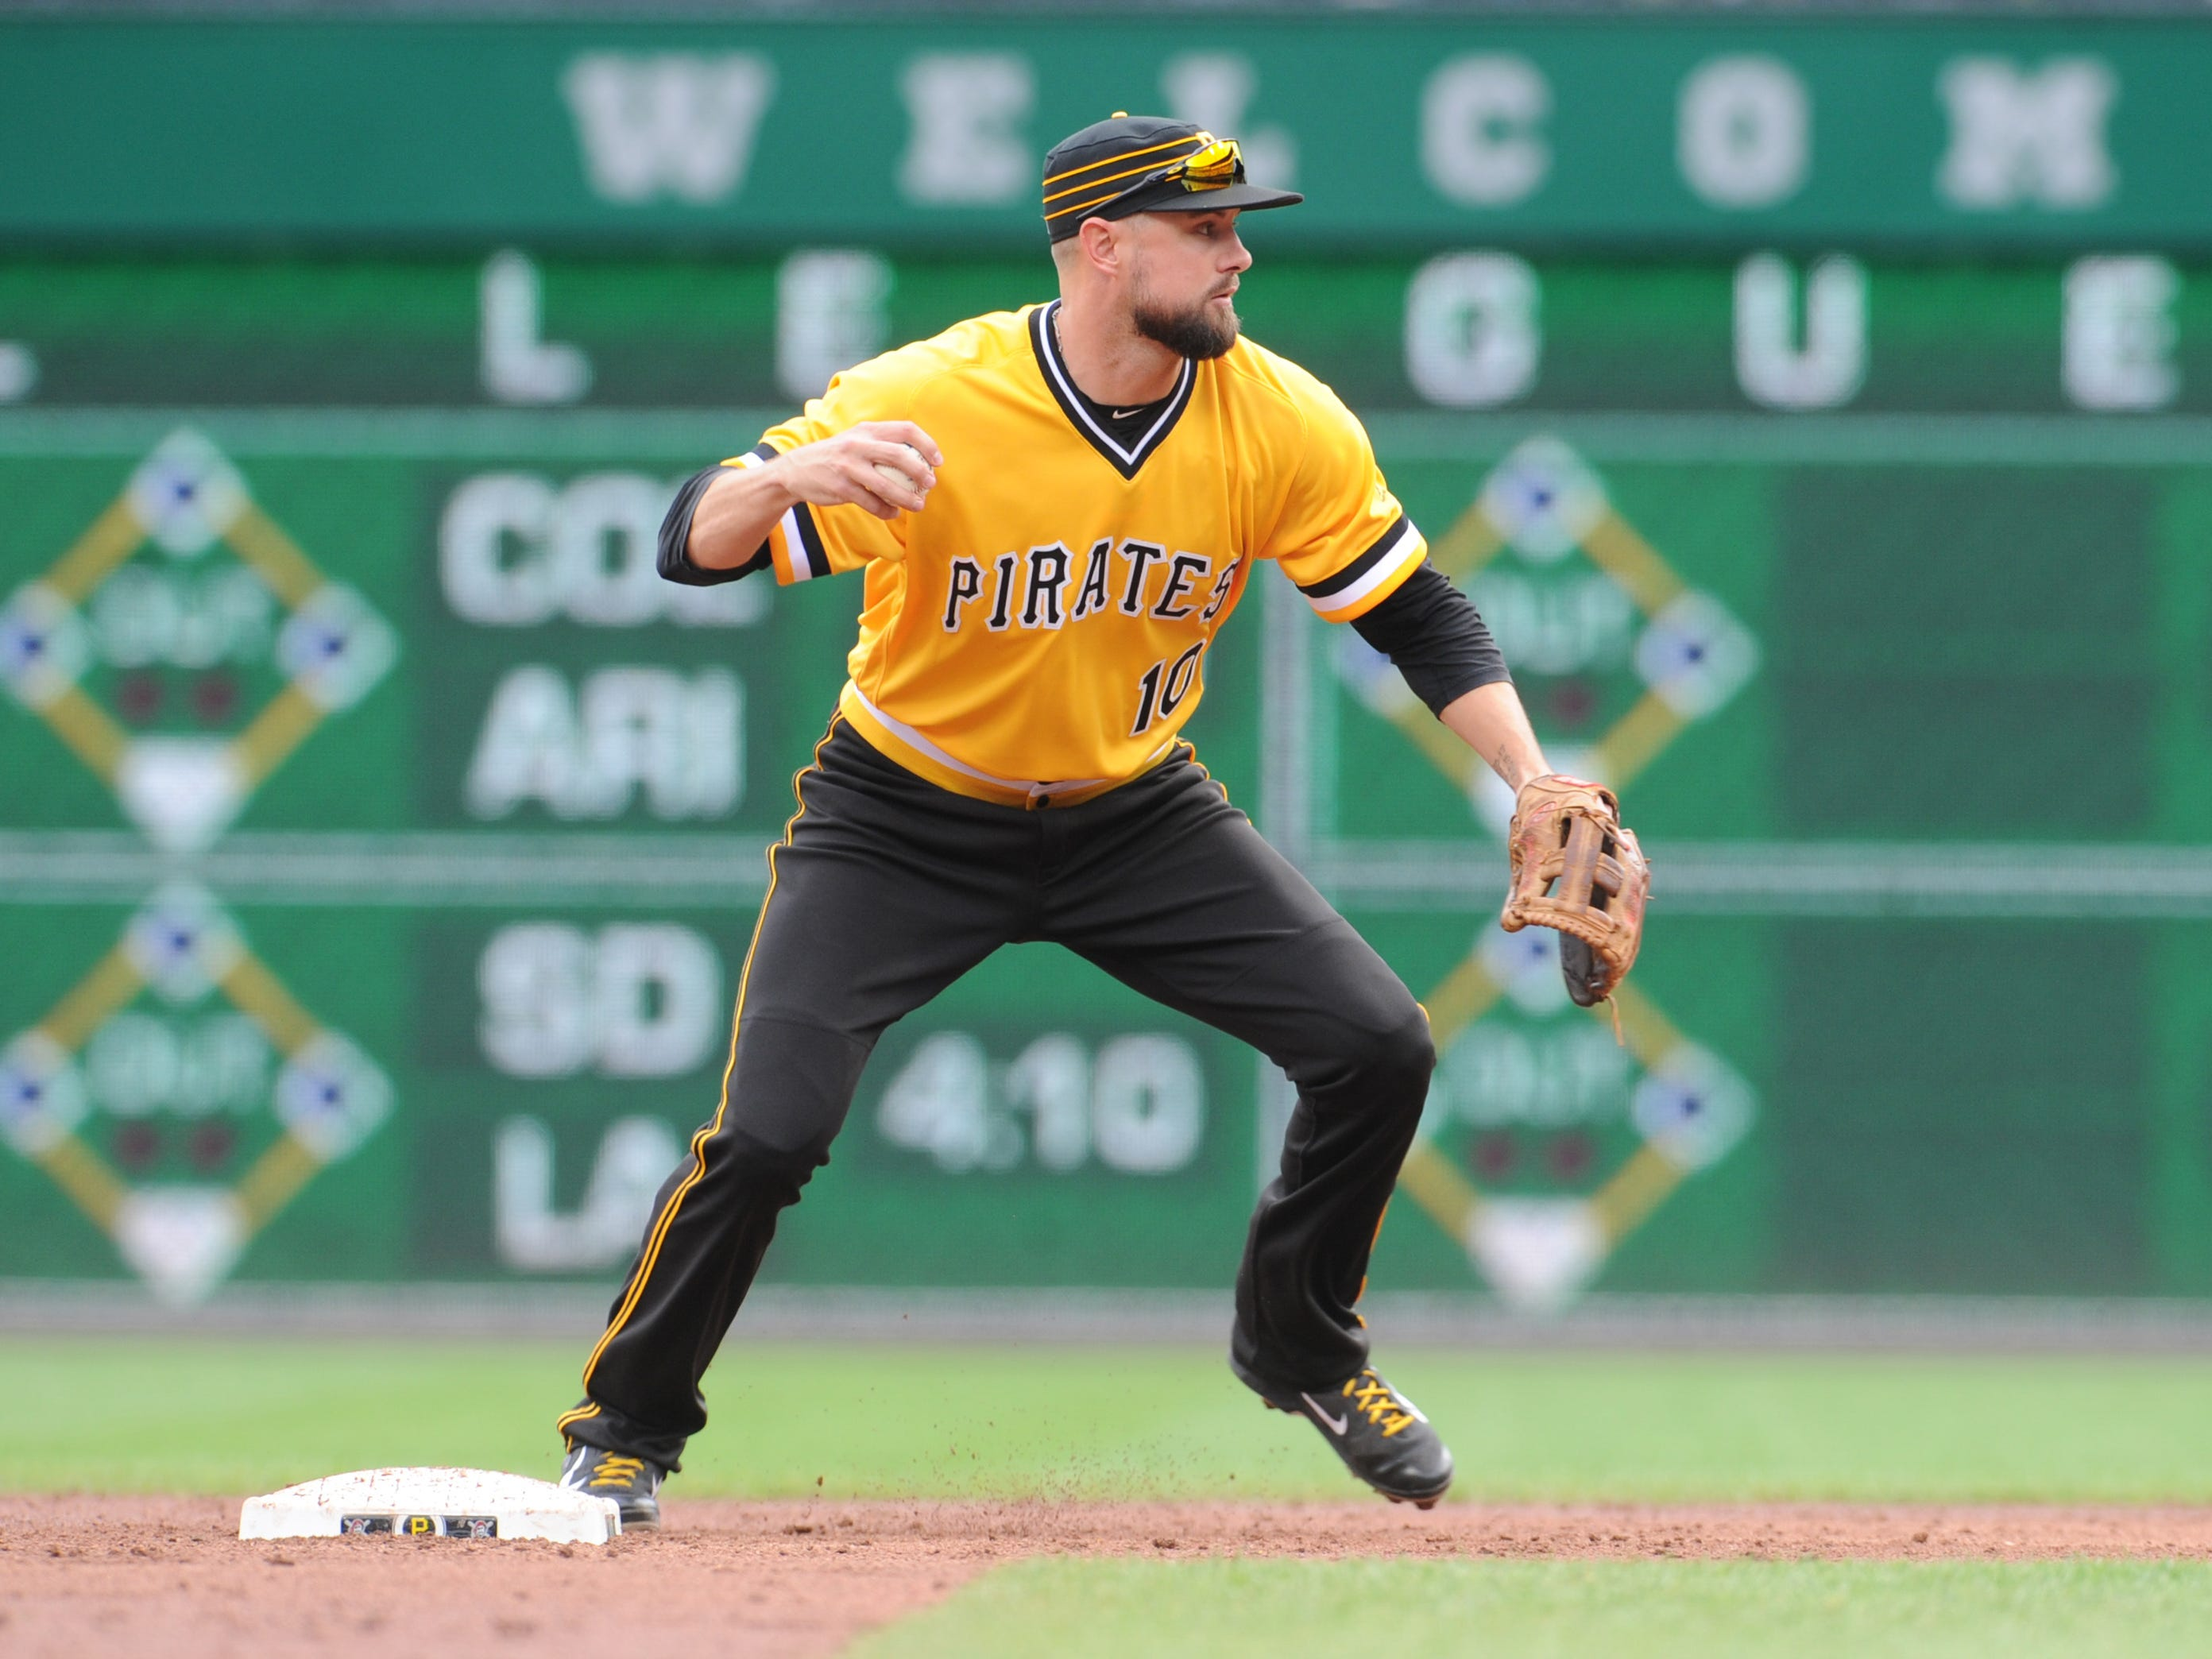 Pittsburgh Pirates shortstop Jordy Mercer throws to first base in the third inning against the Milwaukee Brewers at PNC Park, Sept. 23, 2018.